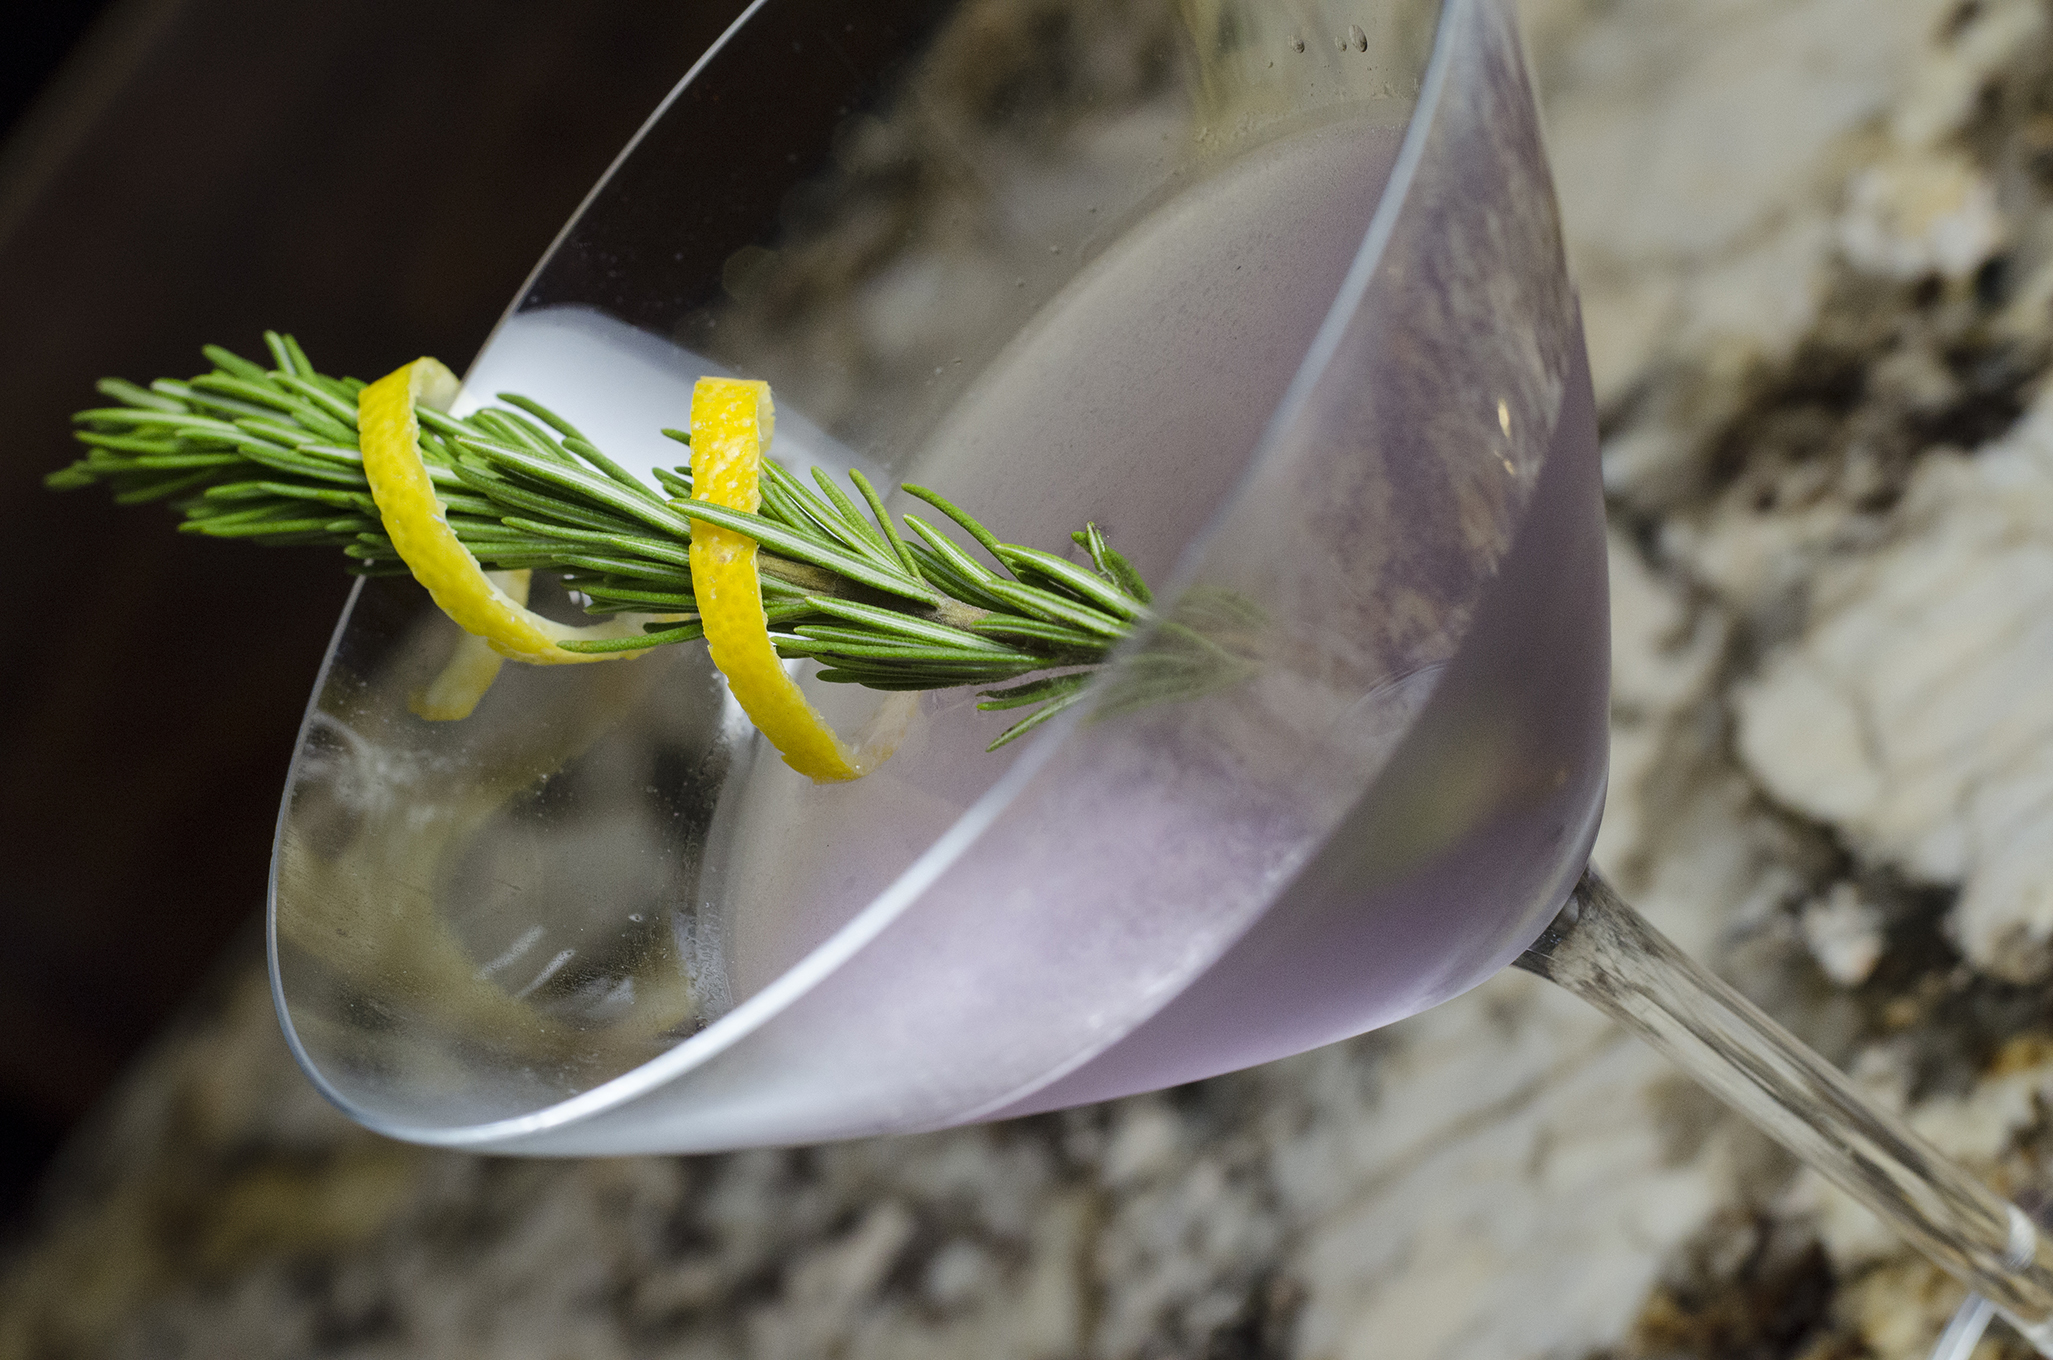 The April Showers cocktail from the 2018 spring cocktail menu at F&B Walkerville in Windsor, Ontario.